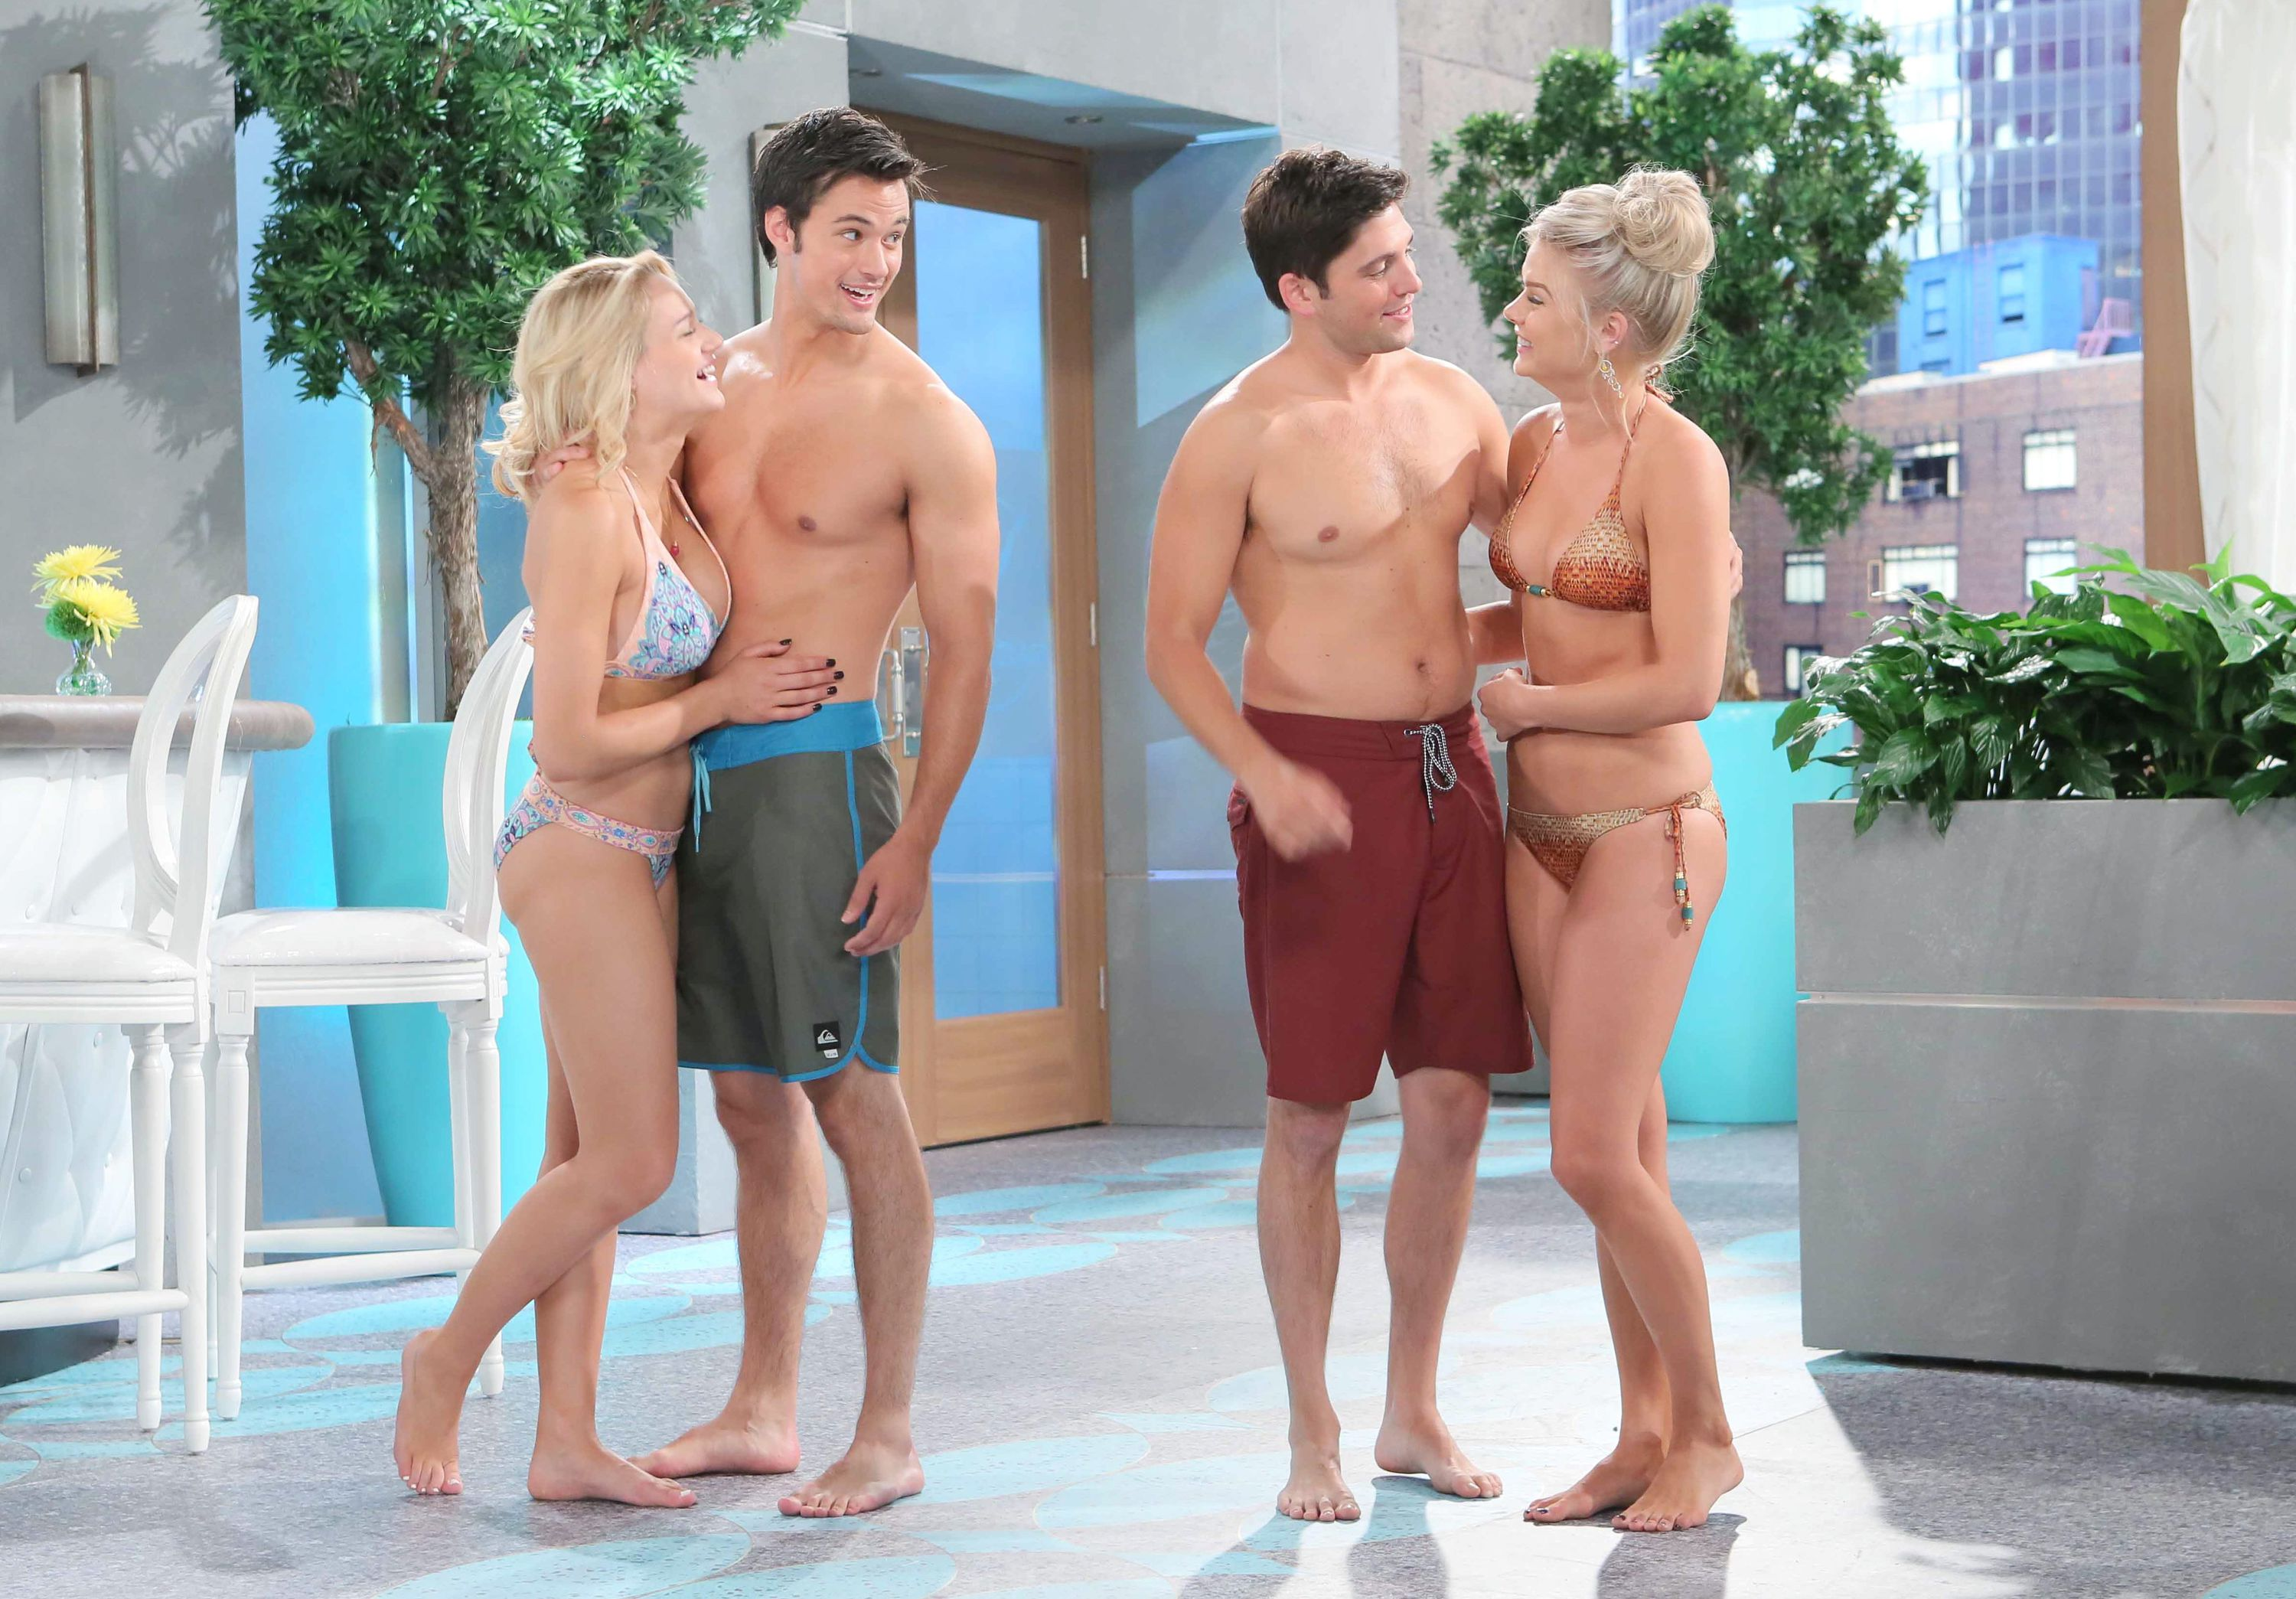 Don't Miss a Hot Second of Y&R This Summer